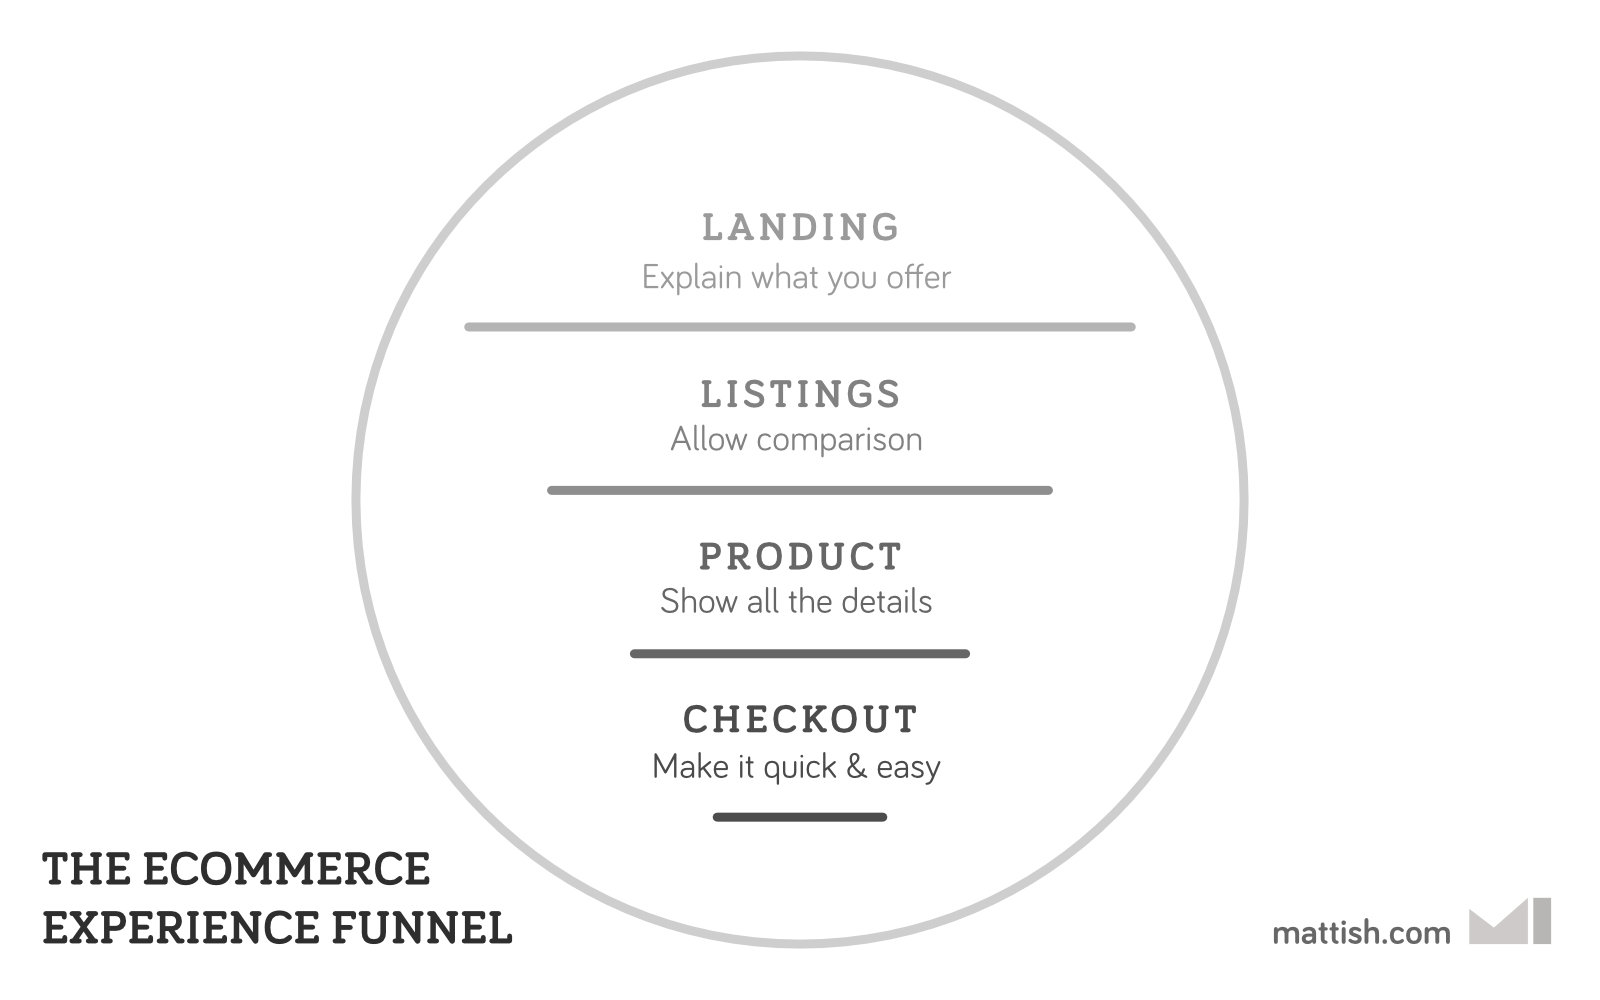 Ecommerce experience funnel UX